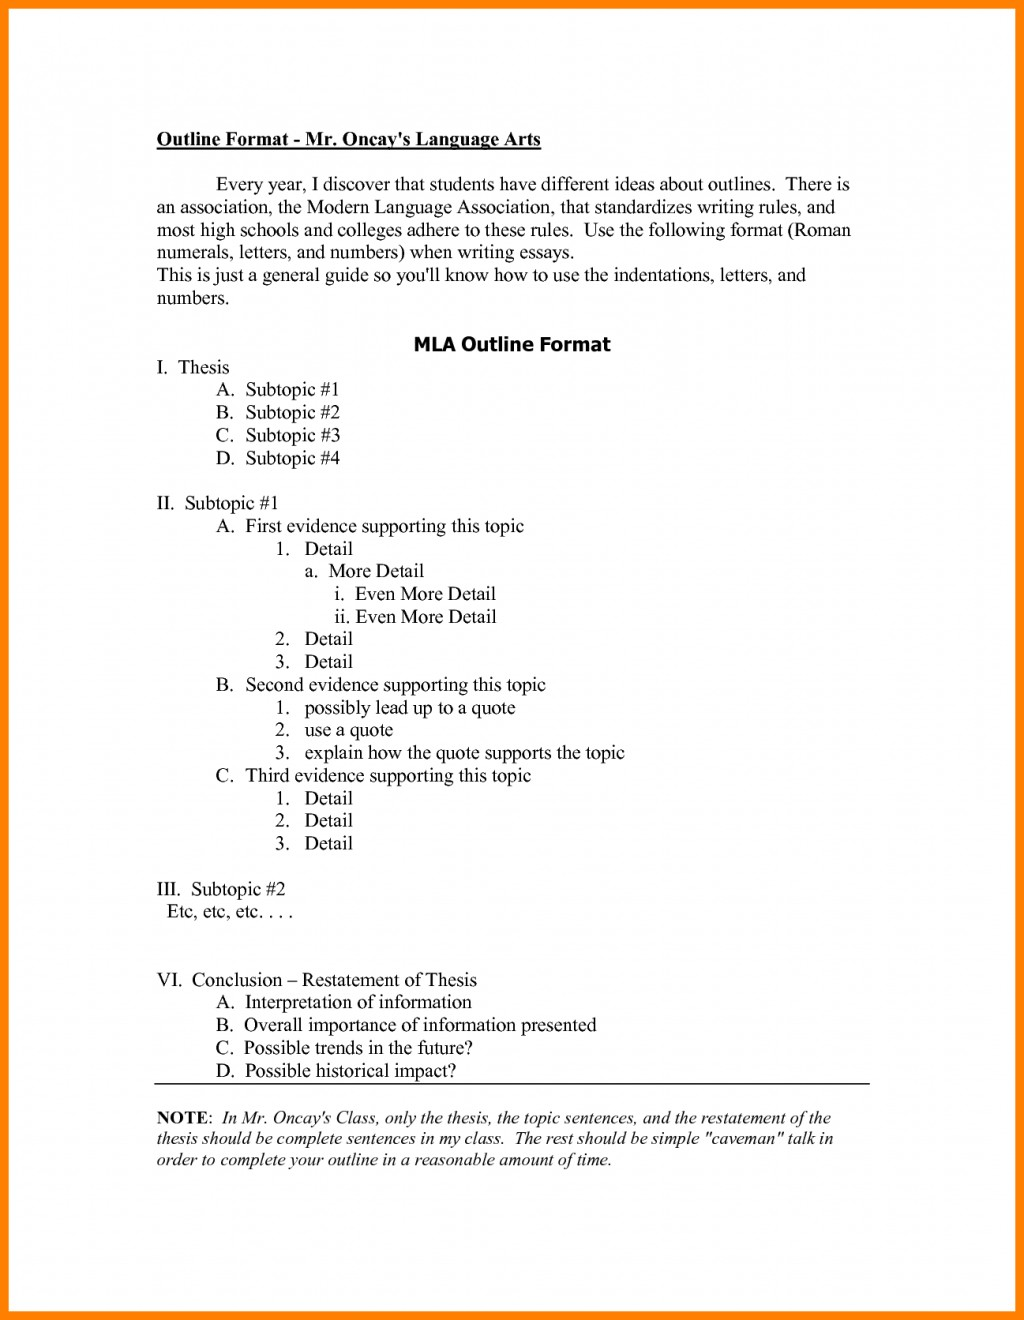 009 Research Paper Mla Template Format Outline Examples 148 Shocking Google Docs Templates Free Large